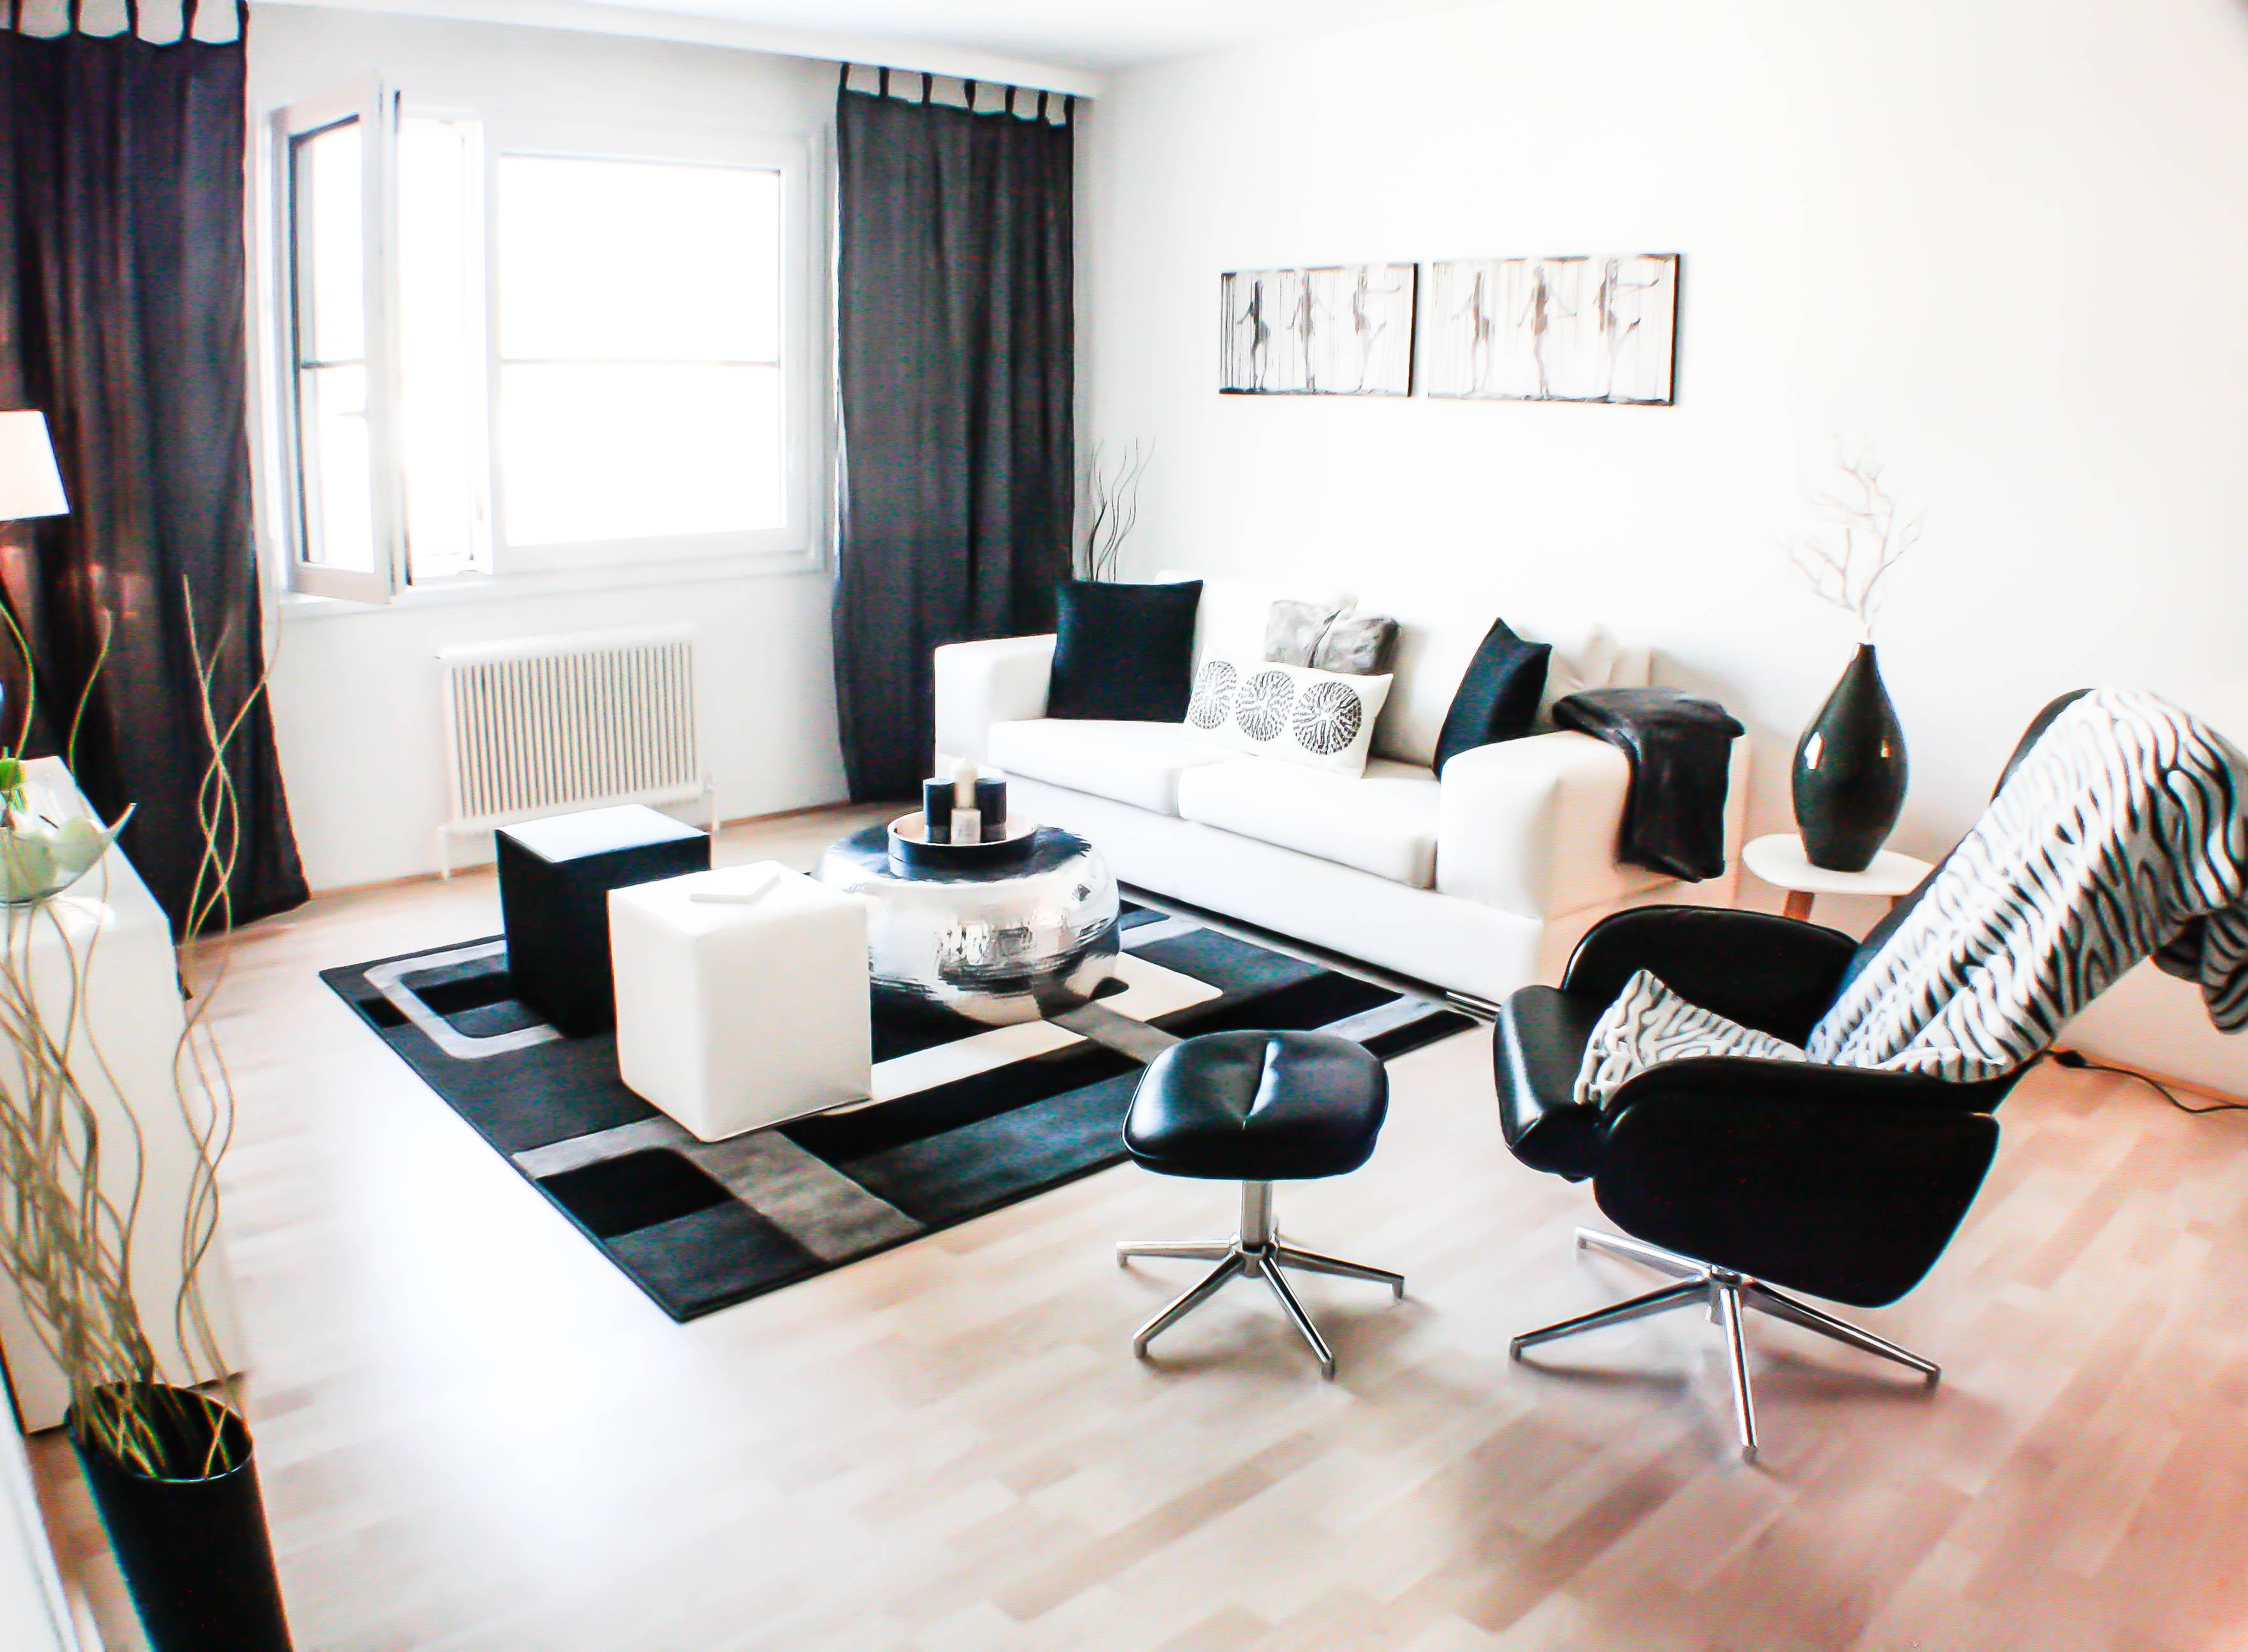 Home staging wohnbereich  eb37a11c a04e 447f 8c8c 6dc023283eb8